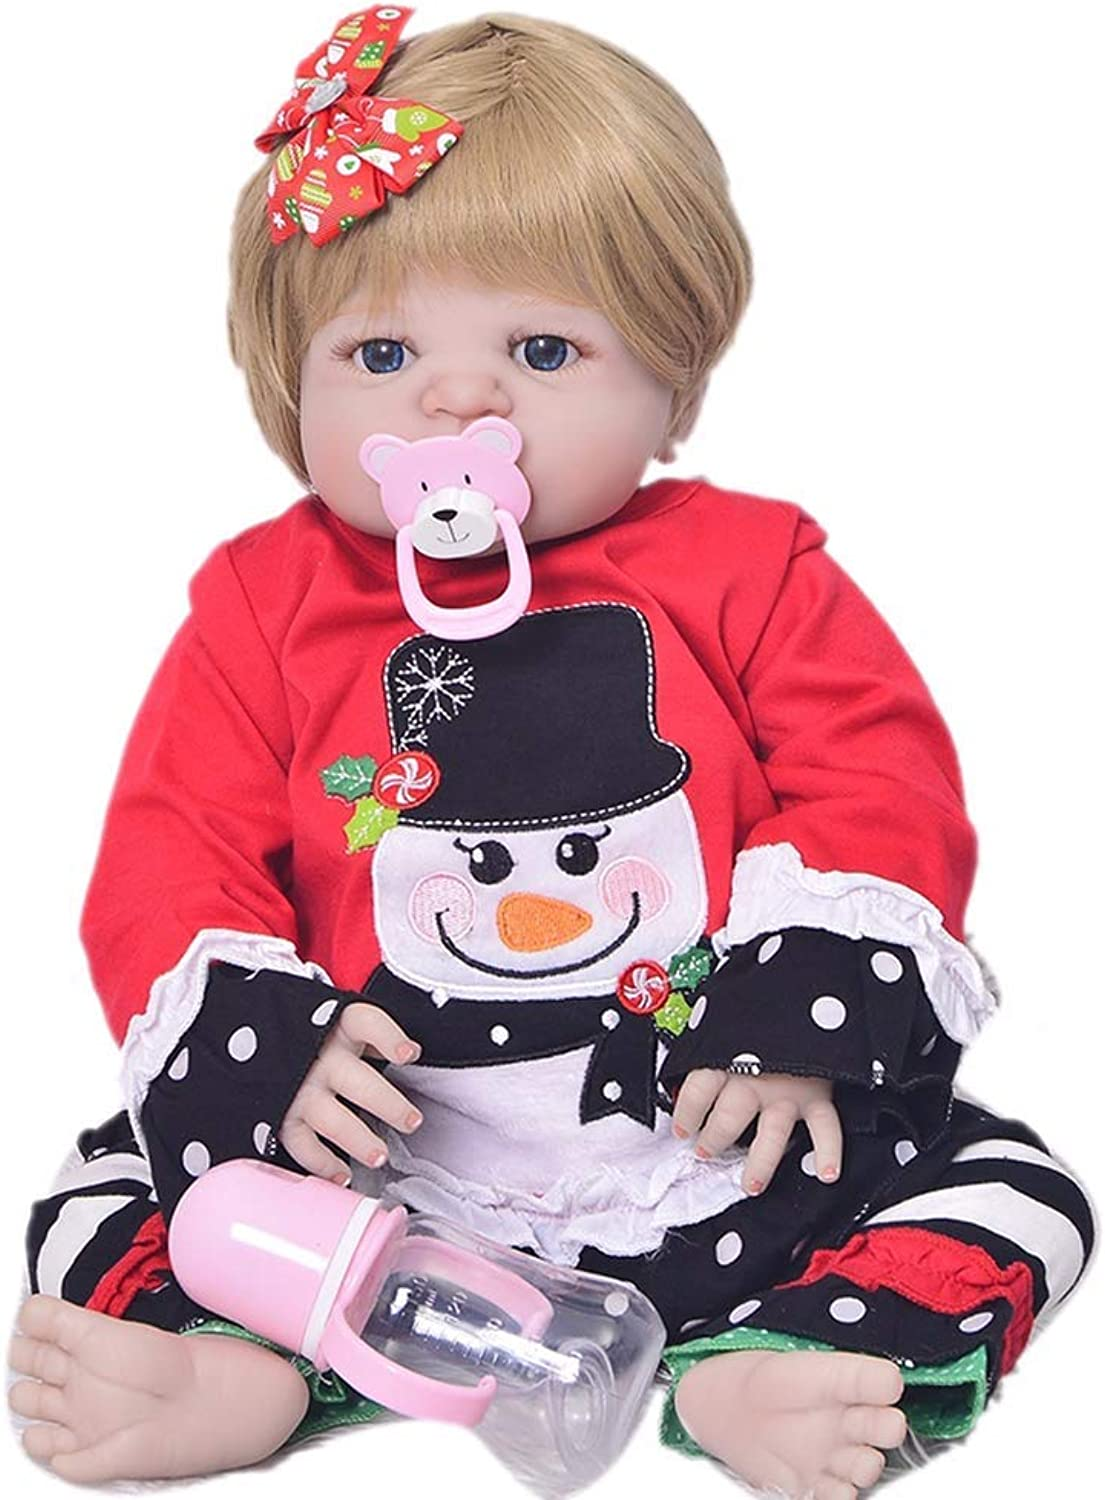 Danping 23inch Soft Vinyl Full Silicone Real Life Like Reborn Baby Doll Newborn Dolls with Snowman Clothes